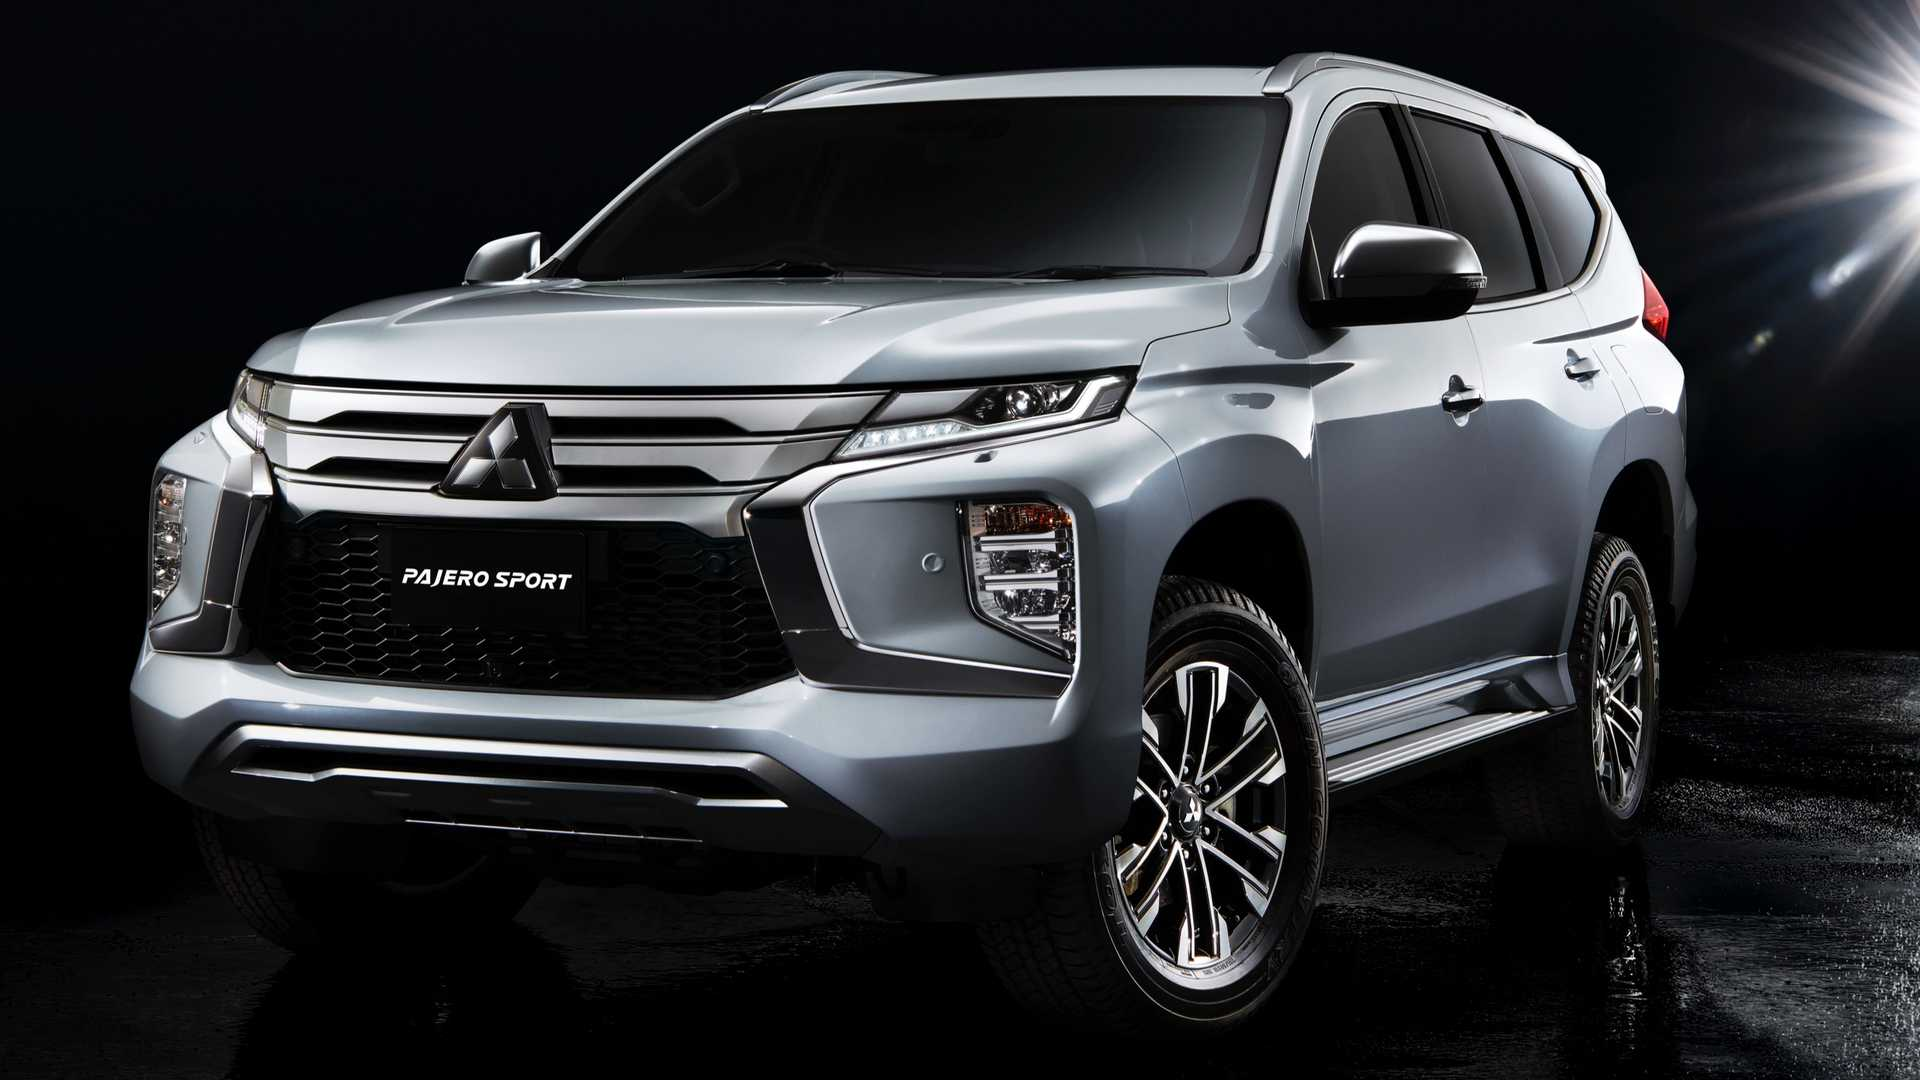 93 The Mitsubishi Pajero Full 2020 Performance by Mitsubishi Pajero Full 2020